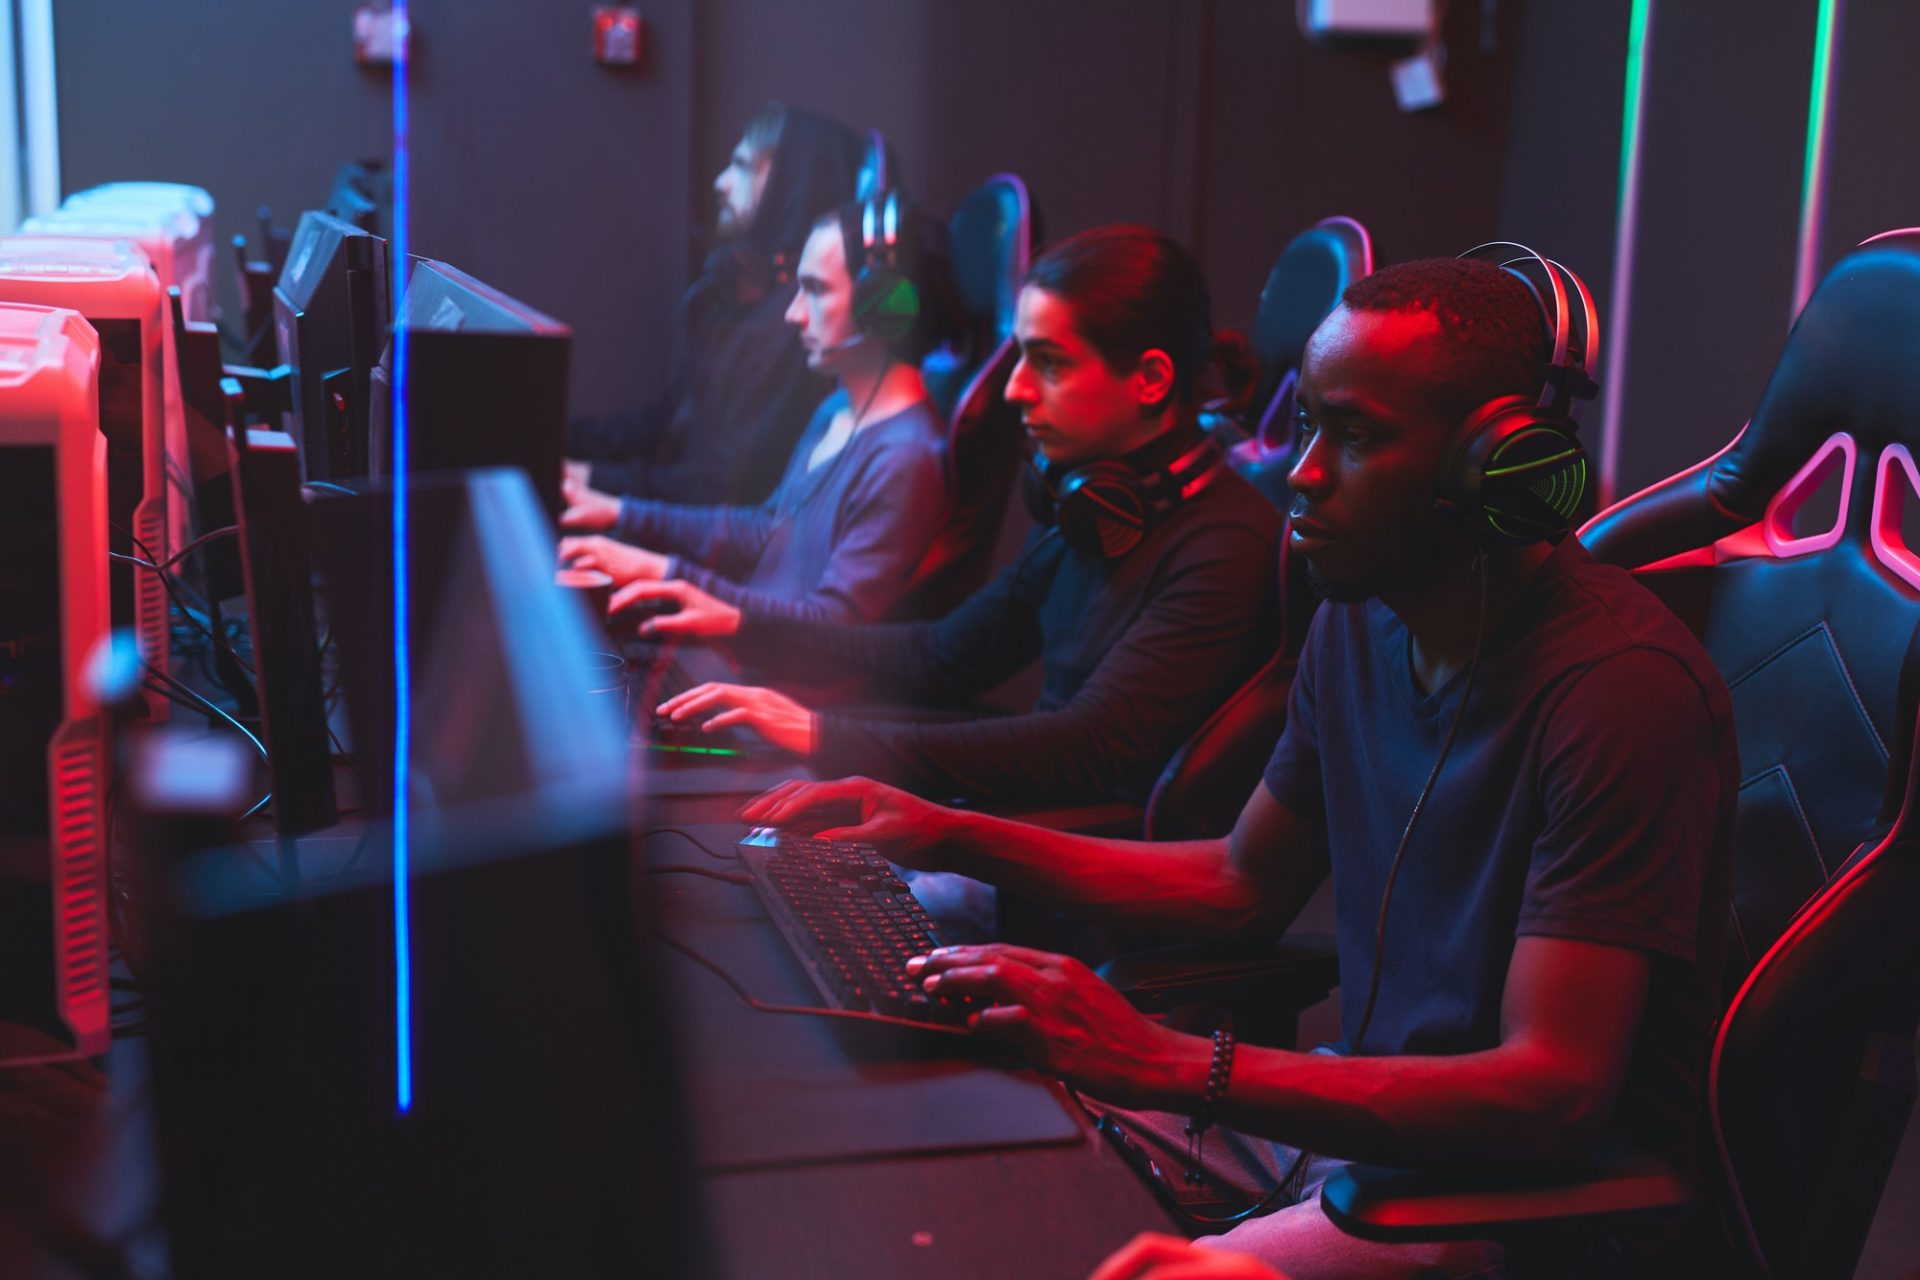 Online gamers playing strategy games in computer club